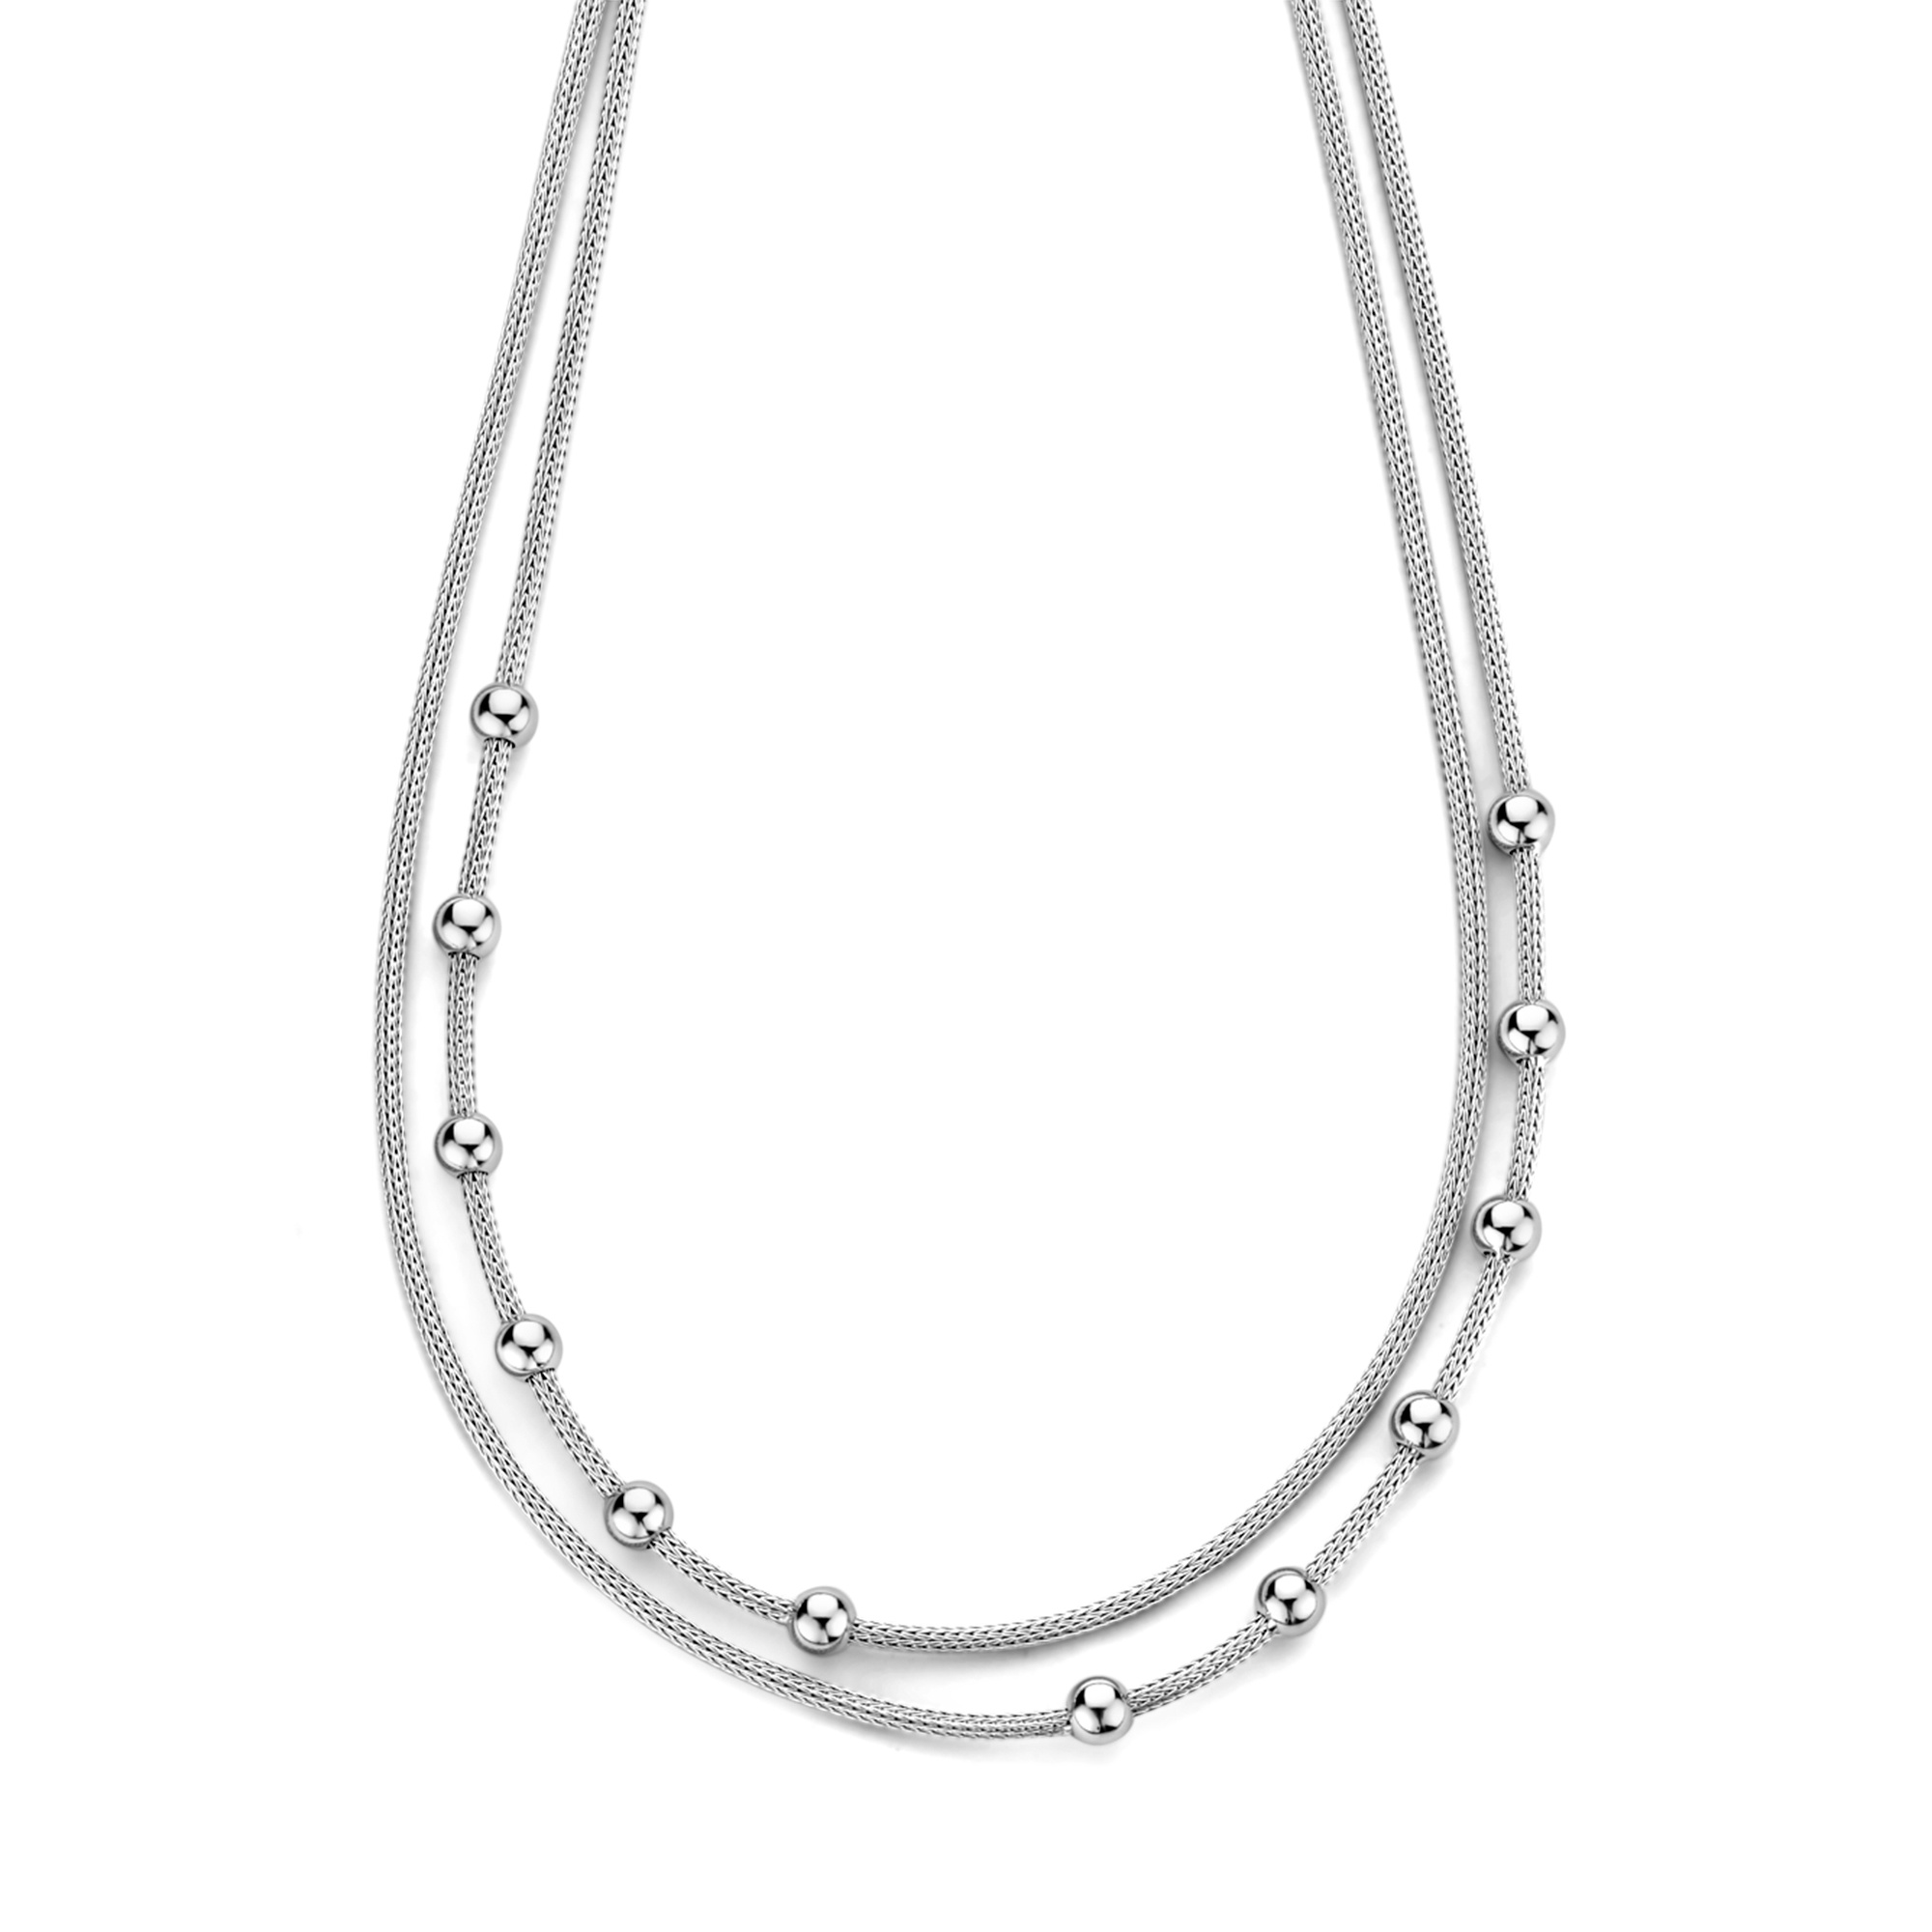 Selected Jewels Léna Nina collana doppia in argento sterling 925